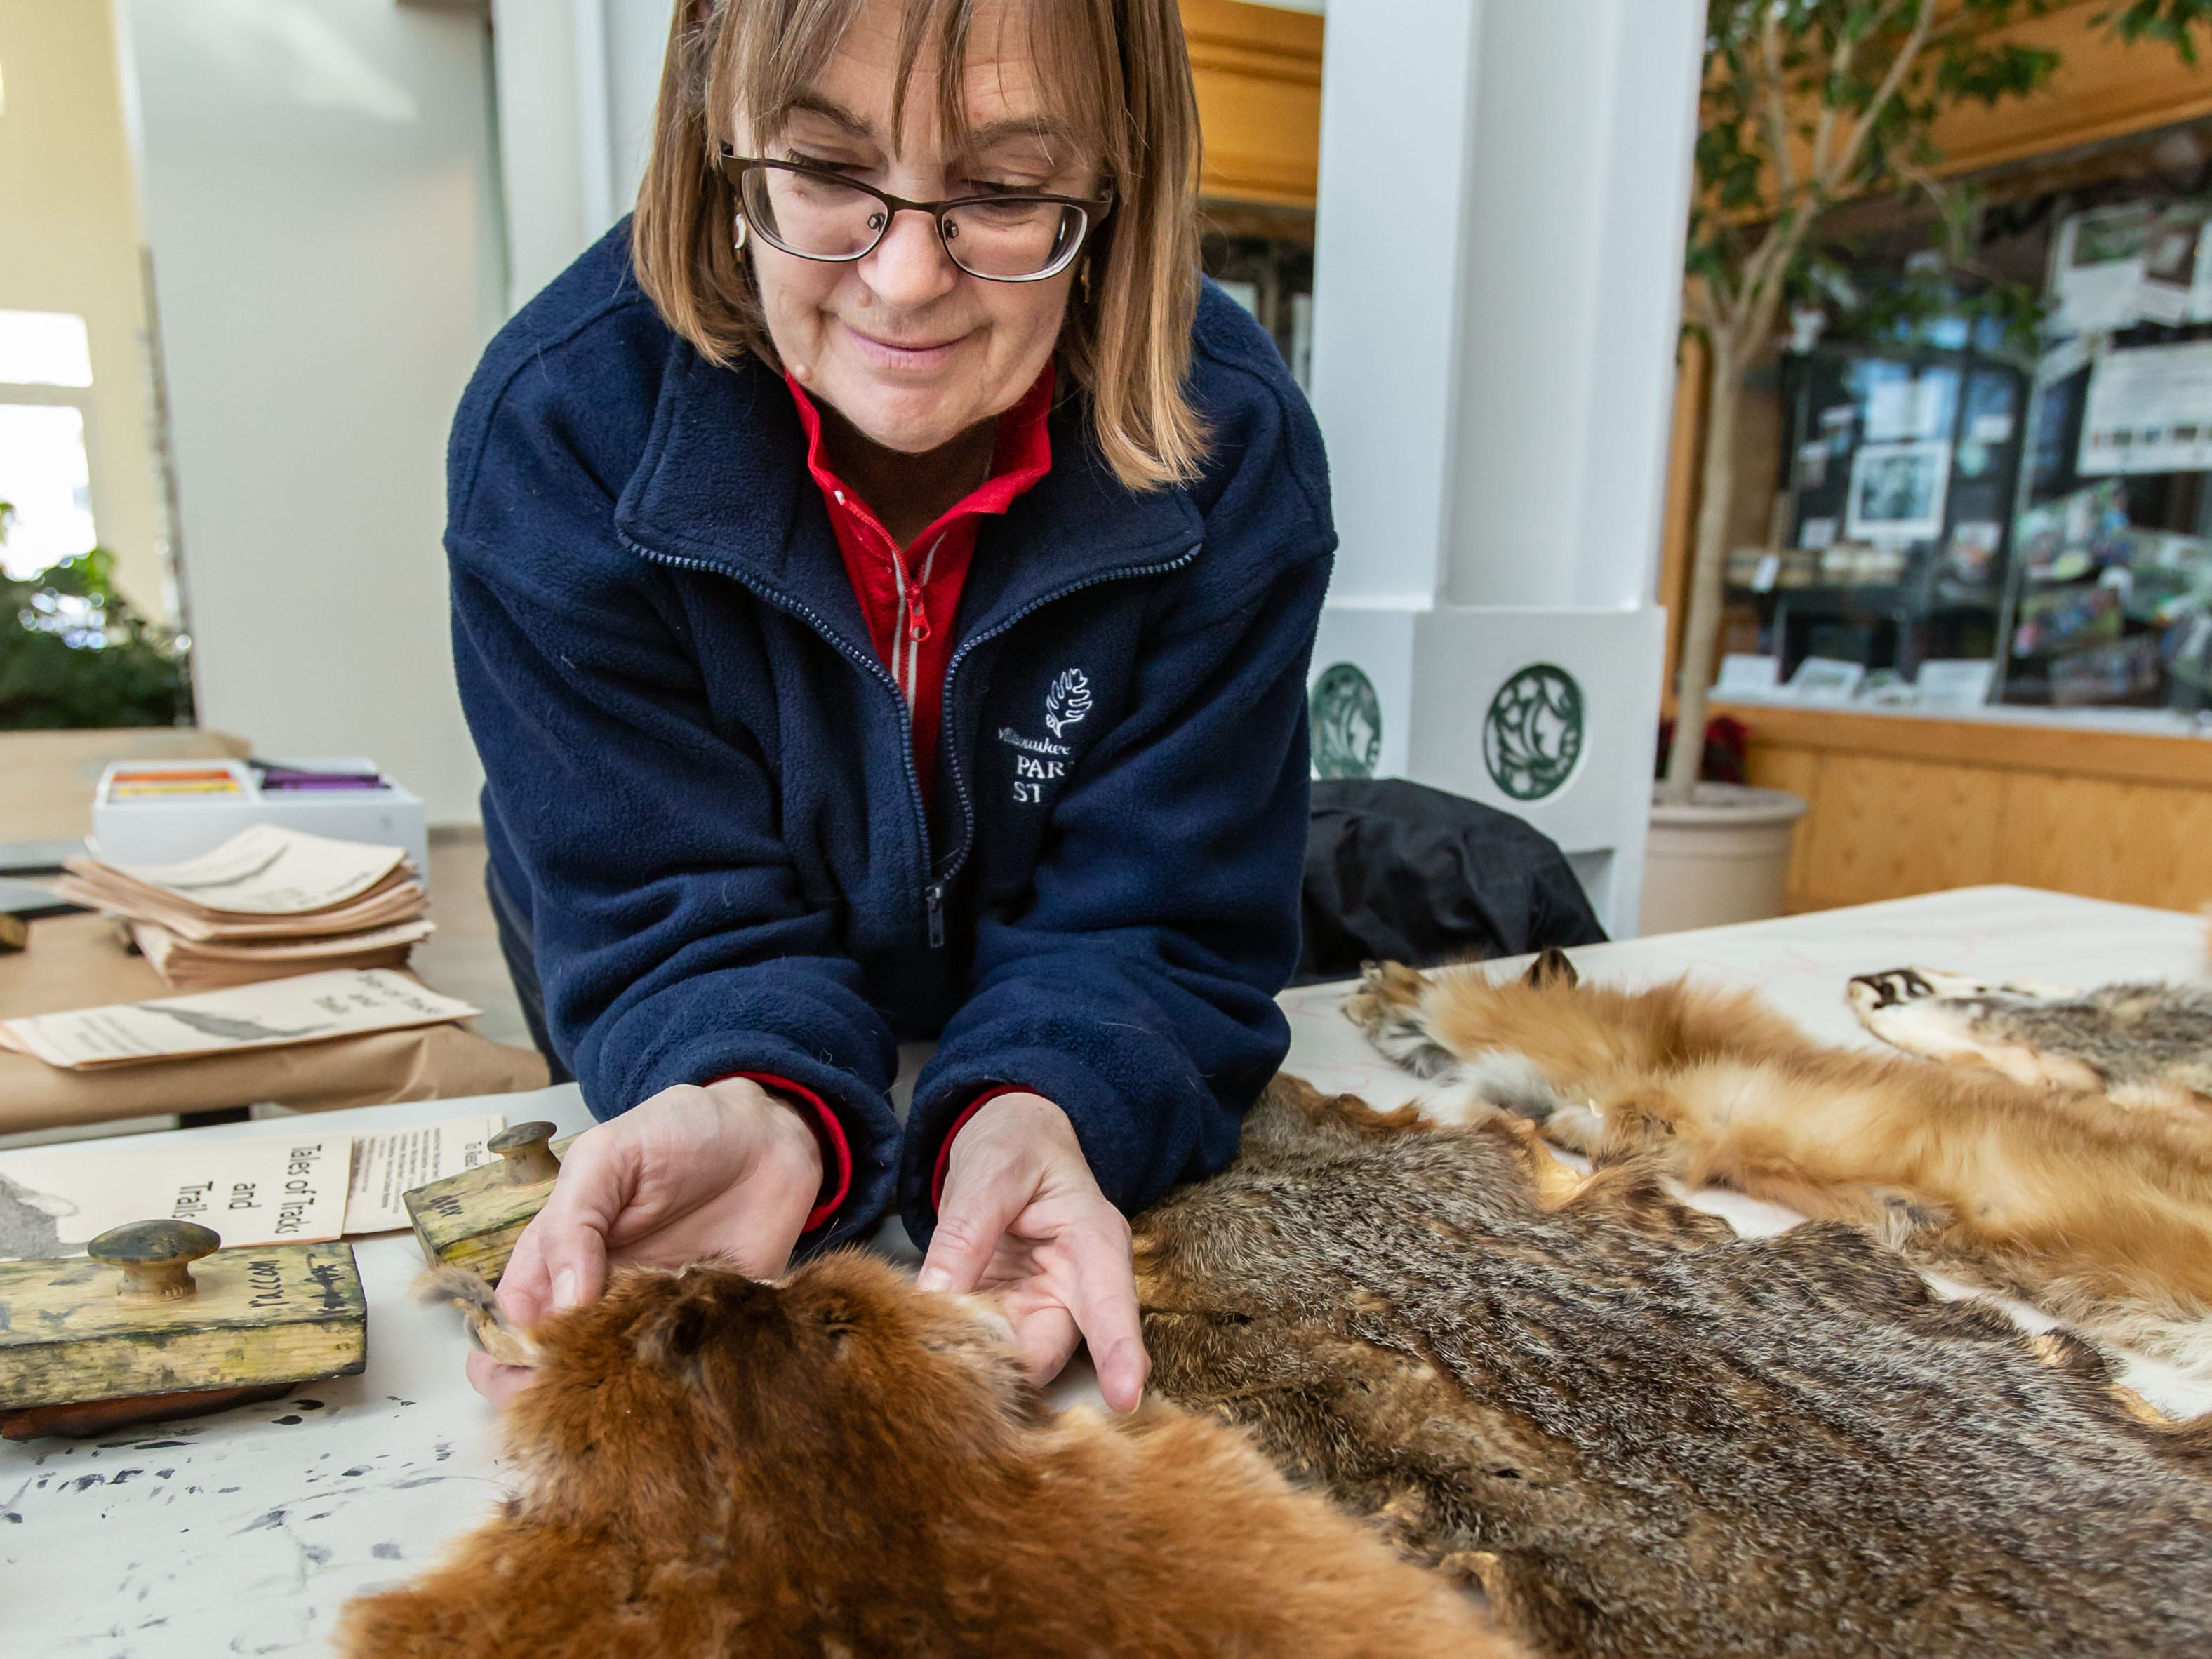 Deb McRae, Director of Wehr Nature Center in Franklin, explains the various properties of native animal pelts during Winterfest at Boerner Botanical Gardens in Hales Corners on Sunday, Jan. 20, 2019. The annual event, hosted by the Friends of Boerner Botanical Gardens, features children's crafts, informational displays, expert-led nature walks and more.